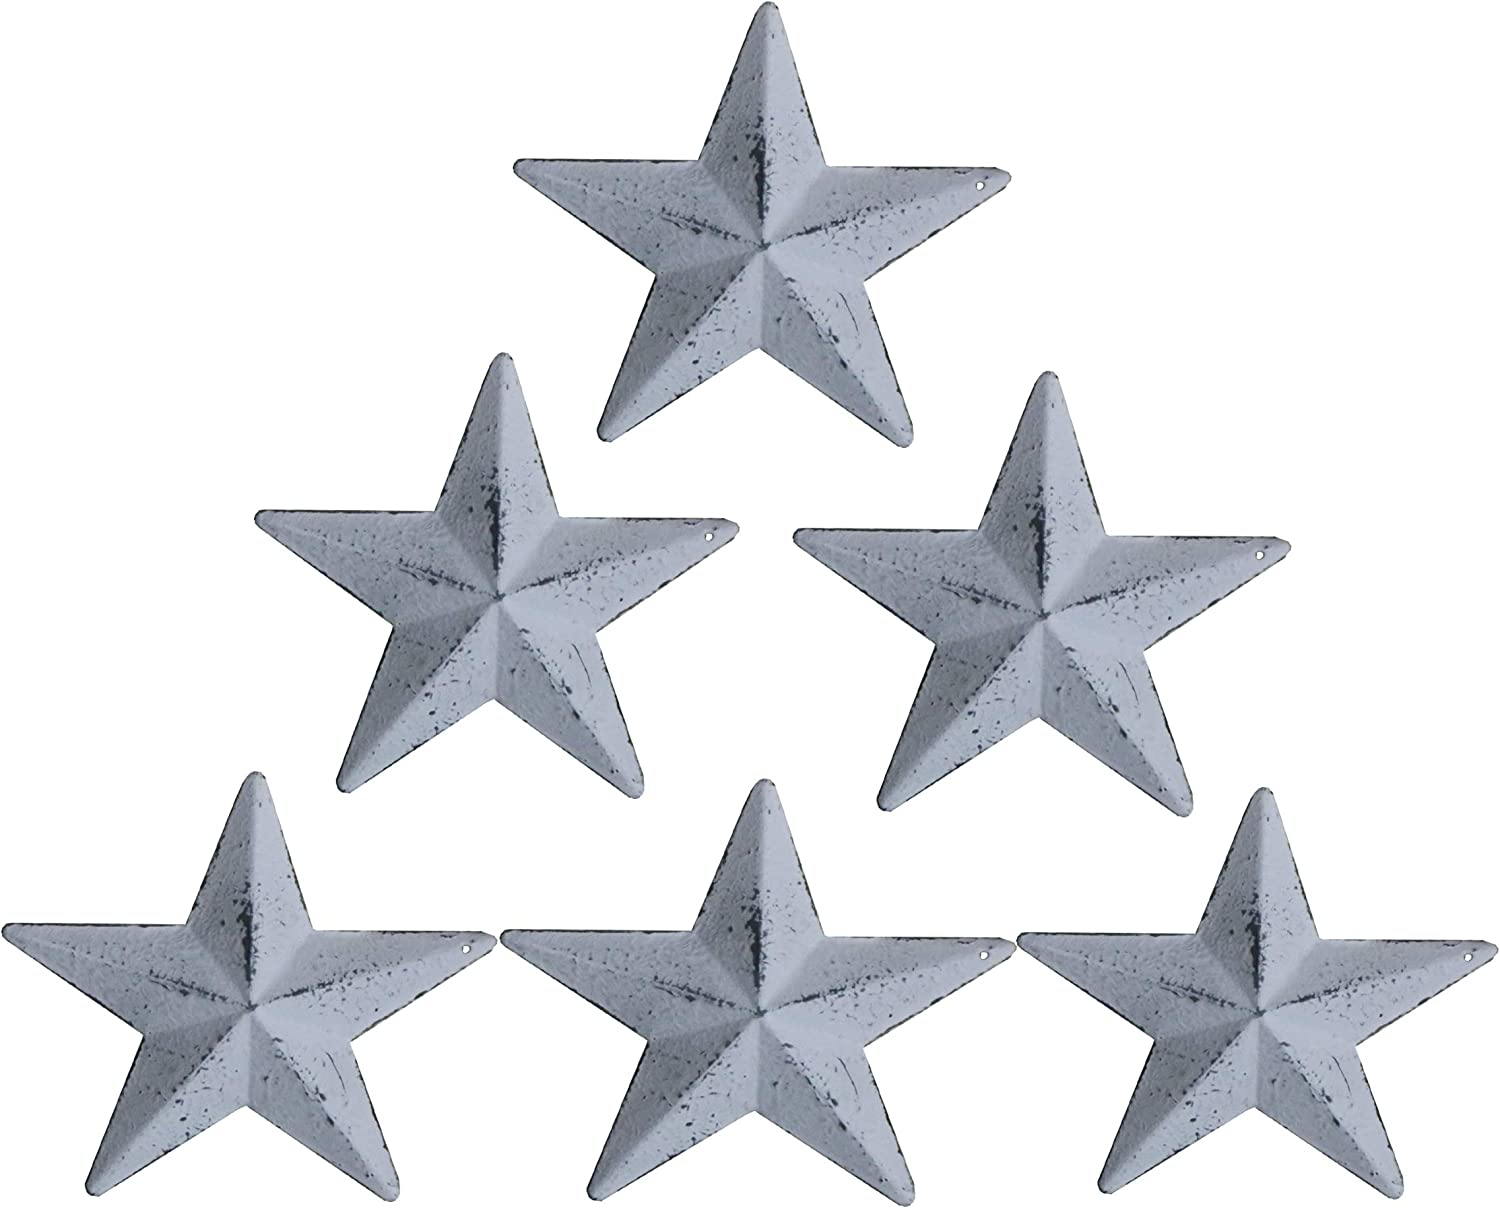 TAIANLE. Metal Barn Star,Wash White Color,Craft Tin Star For Wall,Country Rustic Antique Vintage Gifts Wall/Door Decor, 5-1/2 Inch, Set of 6